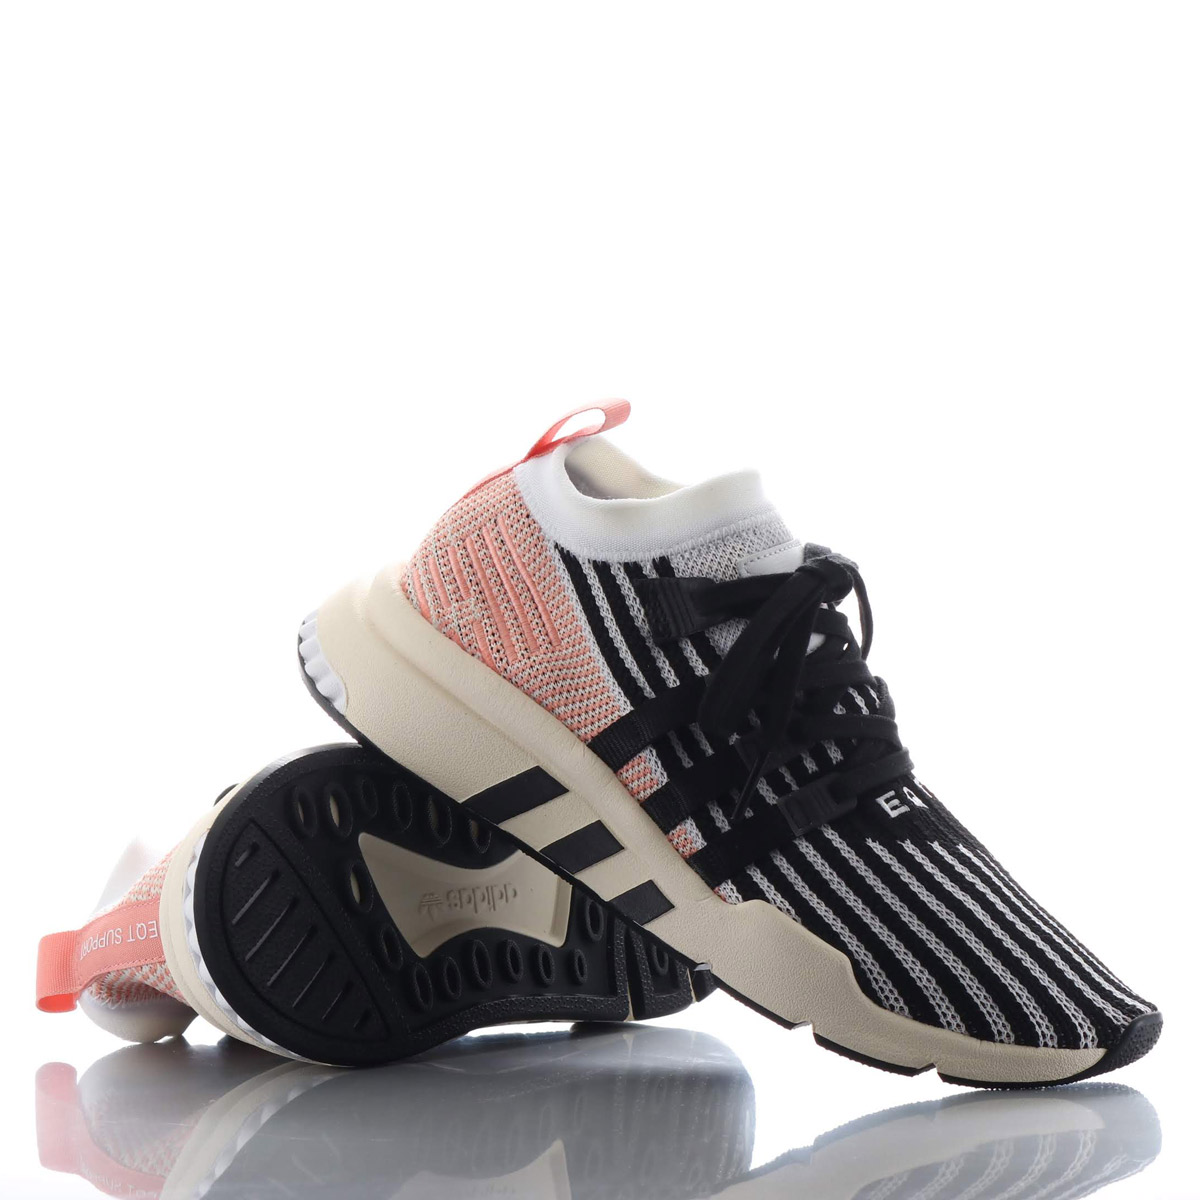 timeless design b2f7c 16319 I treat upper of the comfortable adidas prime knit like socks, and